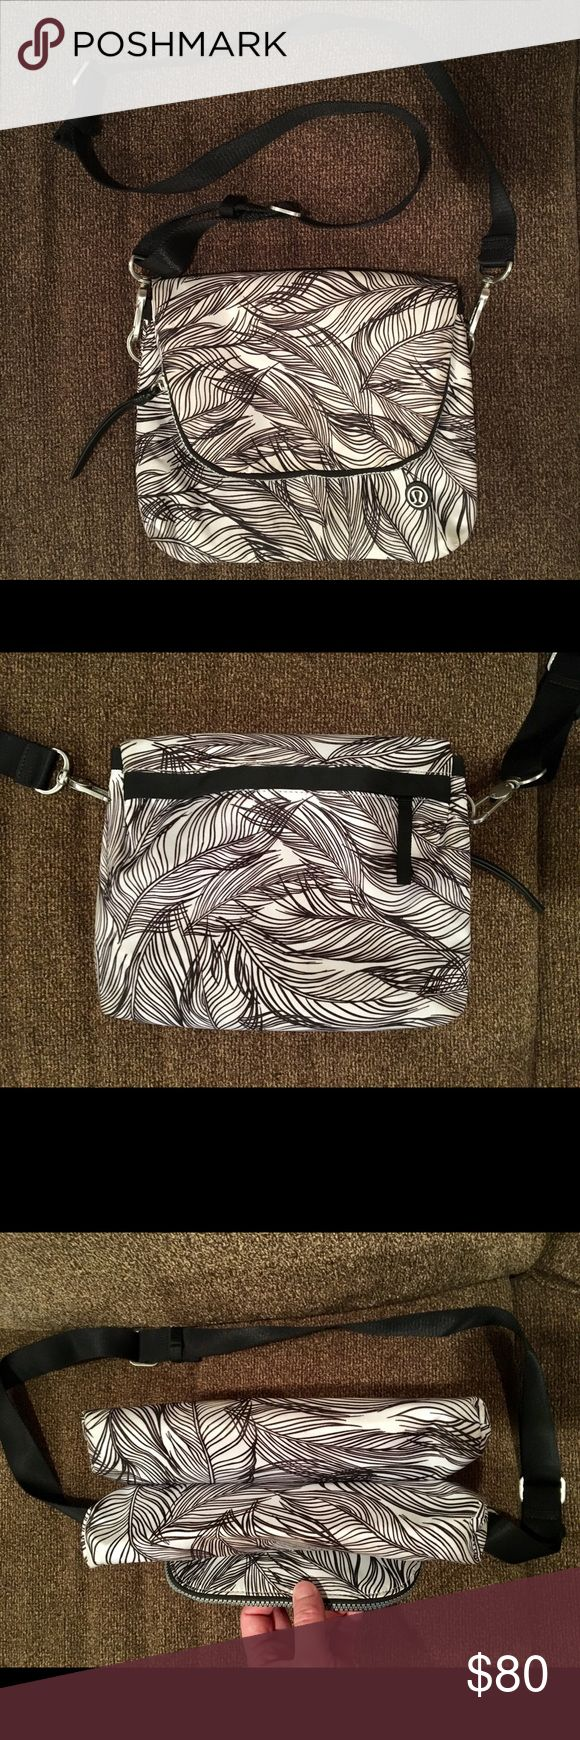 Lululemon Party Om Bag Sketchy Palms Crossbody Lululemon Party Om Bag  Sold out Sketchy Palms Print Very roomy, many compartments  Comes from non smoking, pet free home lululemon athletica Bags Crossbody Bags